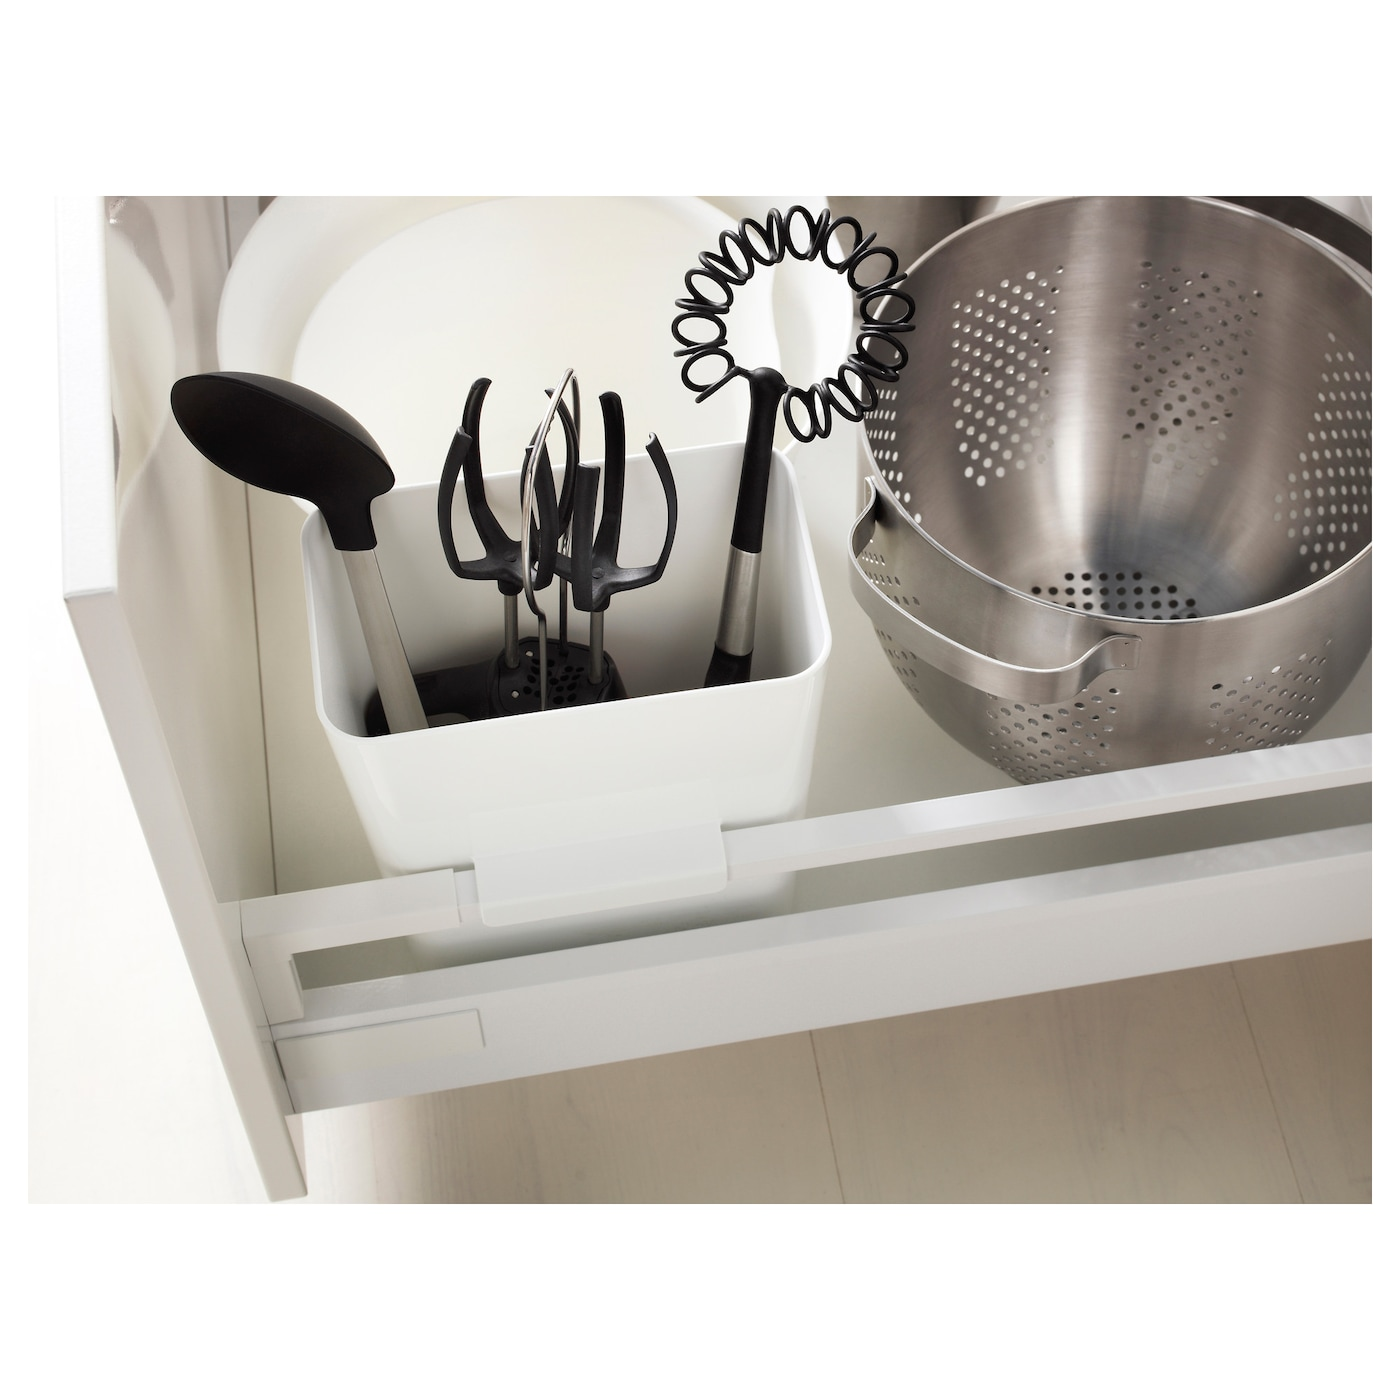 Ikea Variera Kitchen Utensil Rack Easy To Use By Hanging On The Side Of Drawer